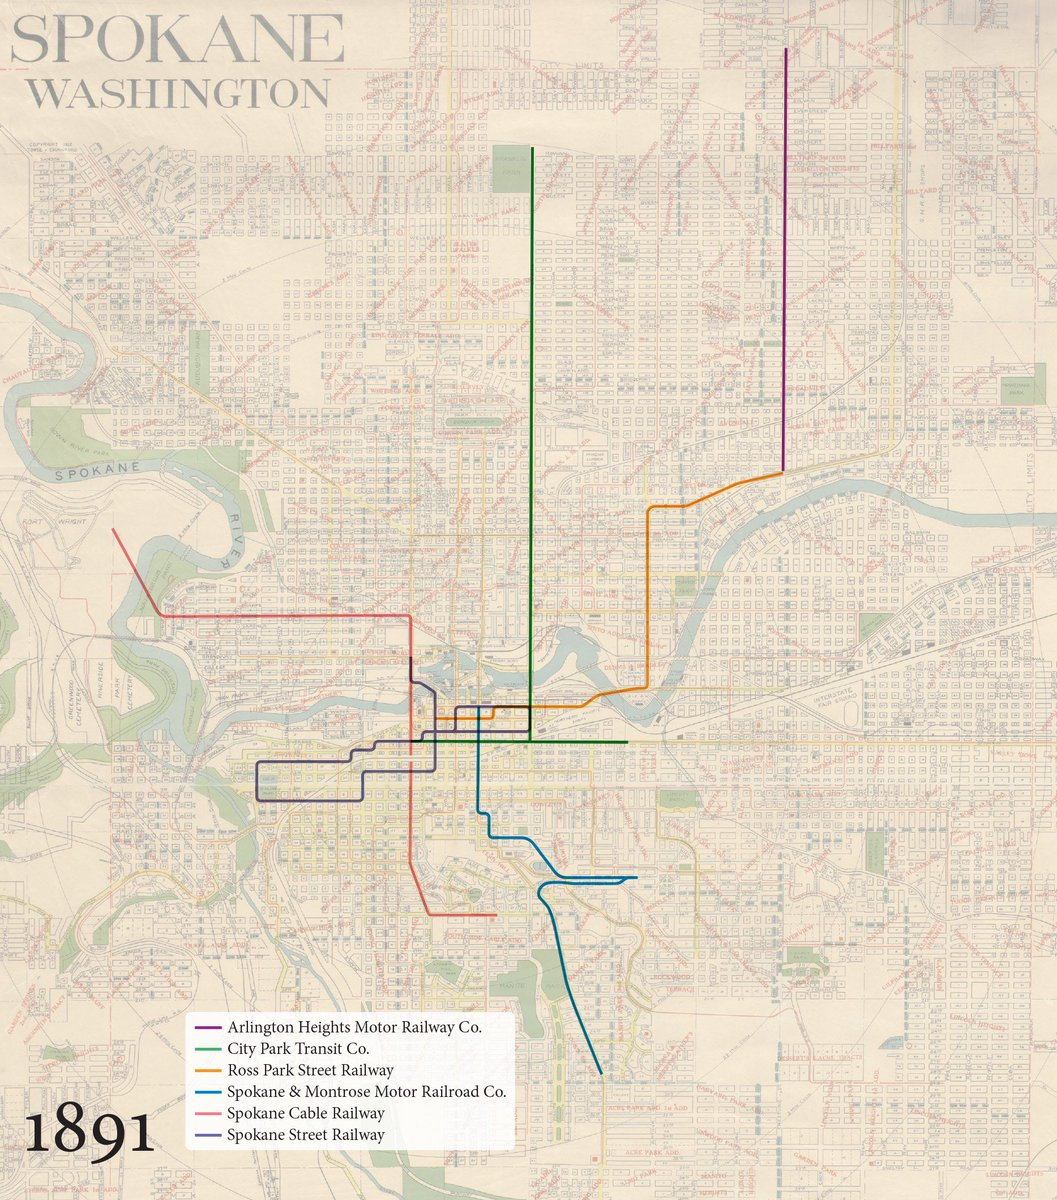 Transit Maps on Twitter A new Spokane streetcar map this time